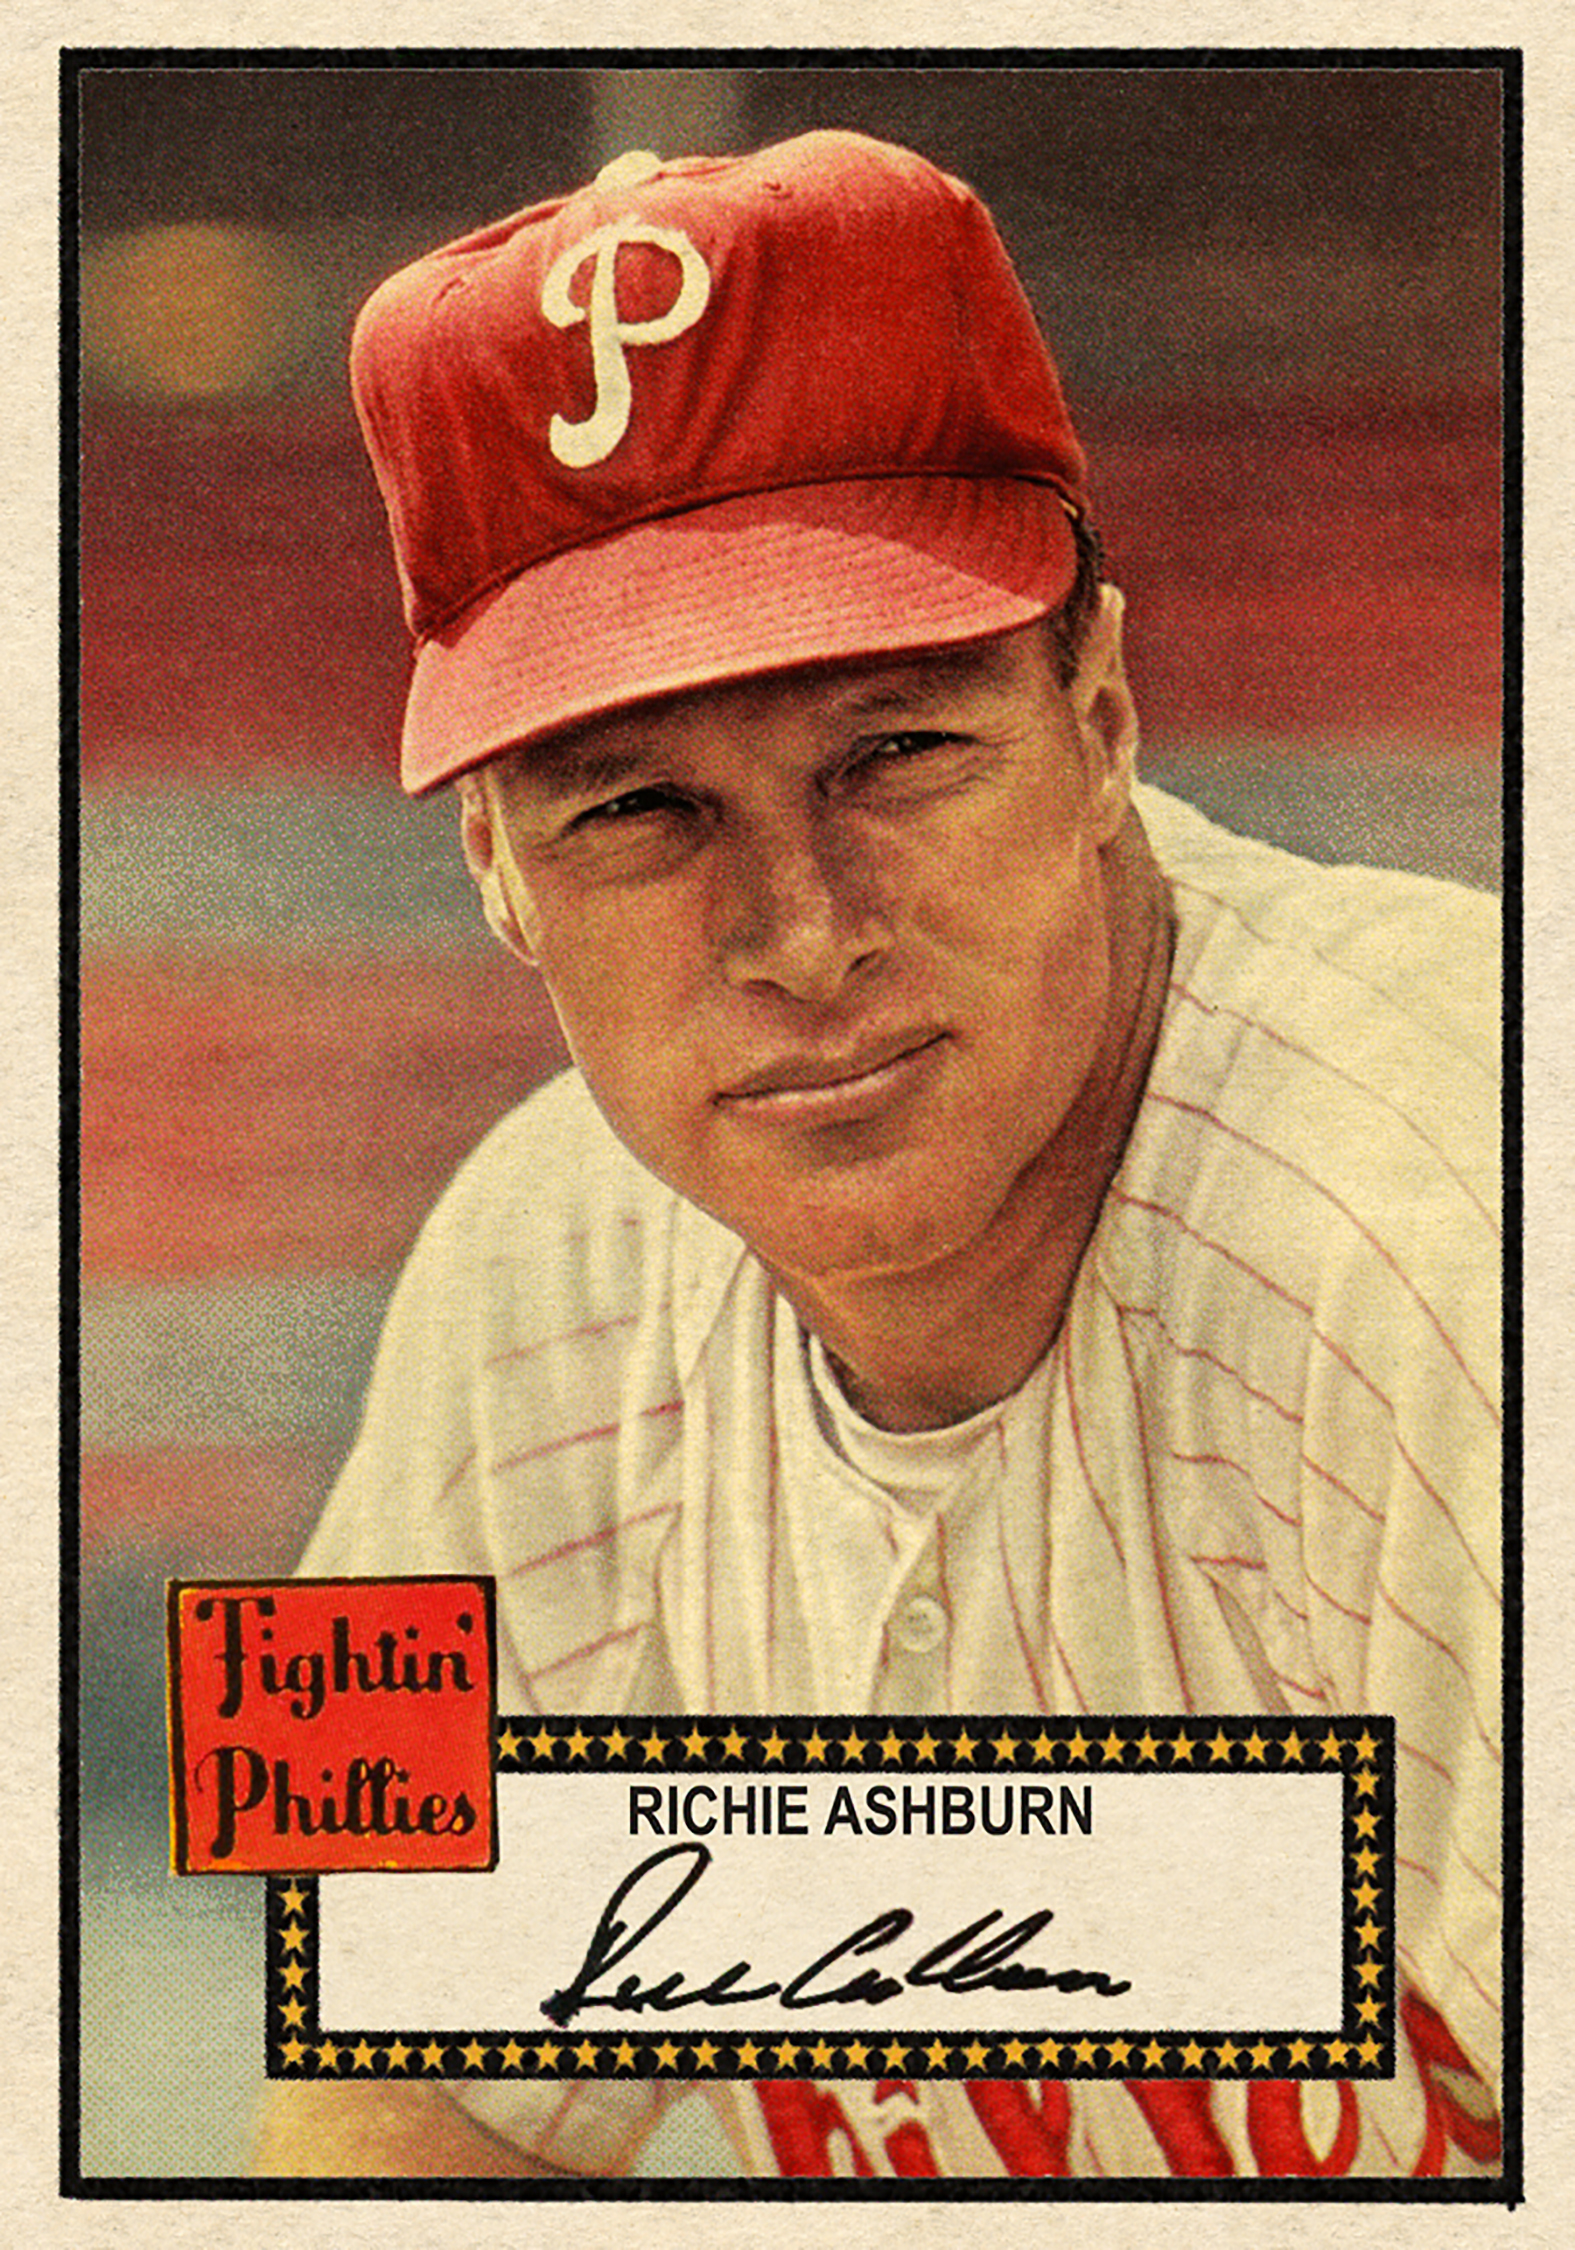 '52 Baseball #241RICH ASHBURN HI# - Stunning portrait of the Phillies centerfielder. Beautifully hand-colored.SOLD FOR 142.50 USD, December 2107